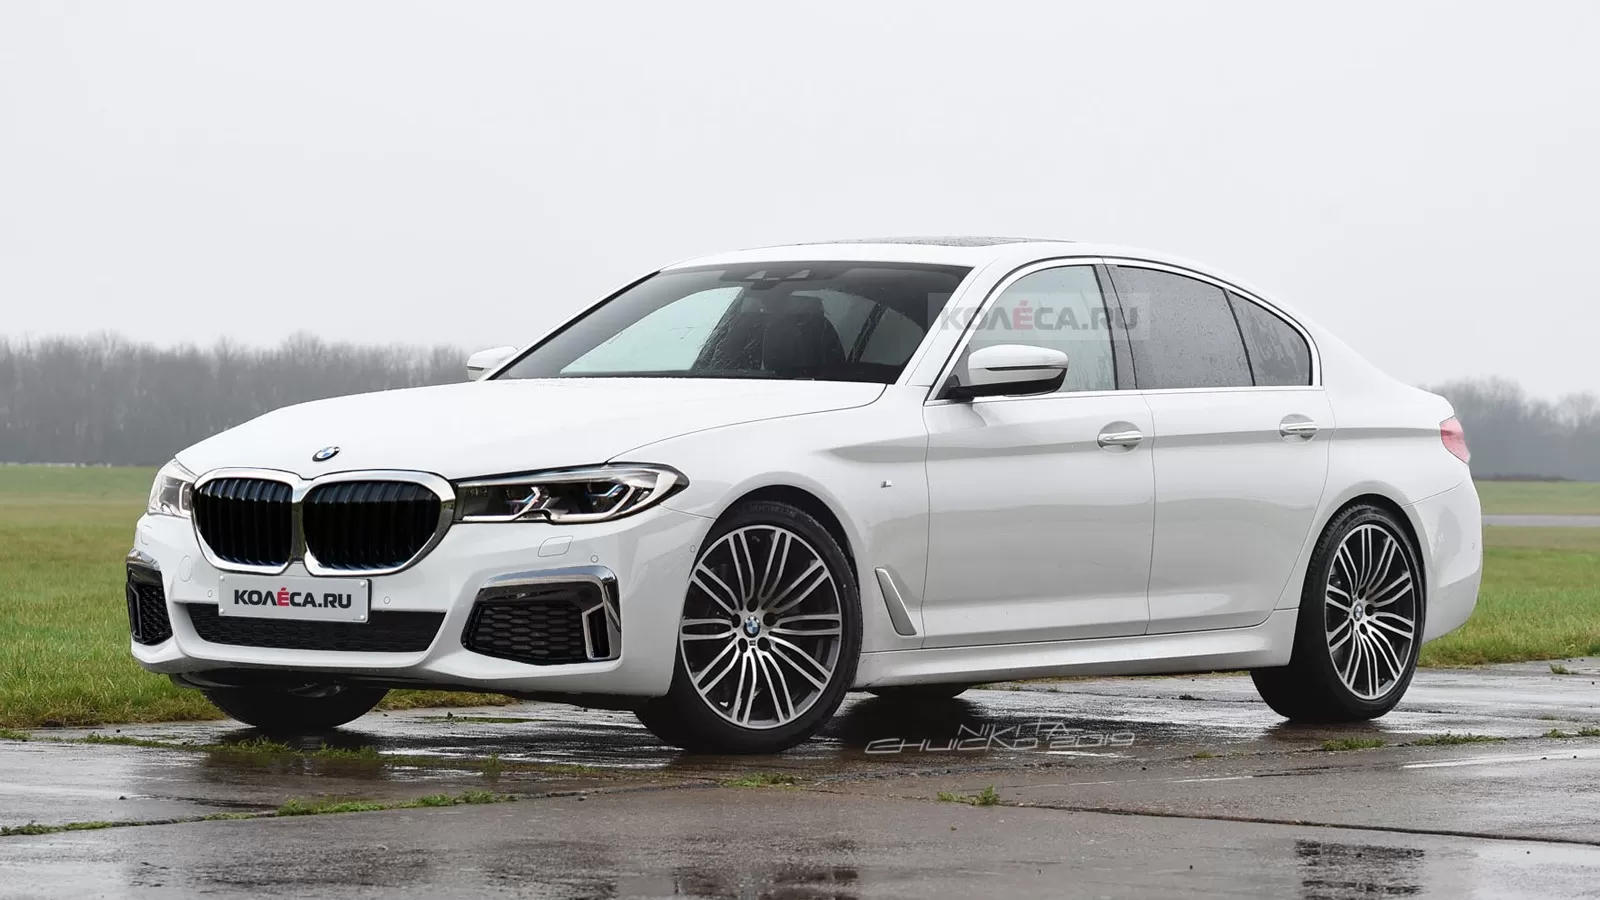 Expect The 2020 BMW 5 Series Facelift To Look Like This   CarBuzz